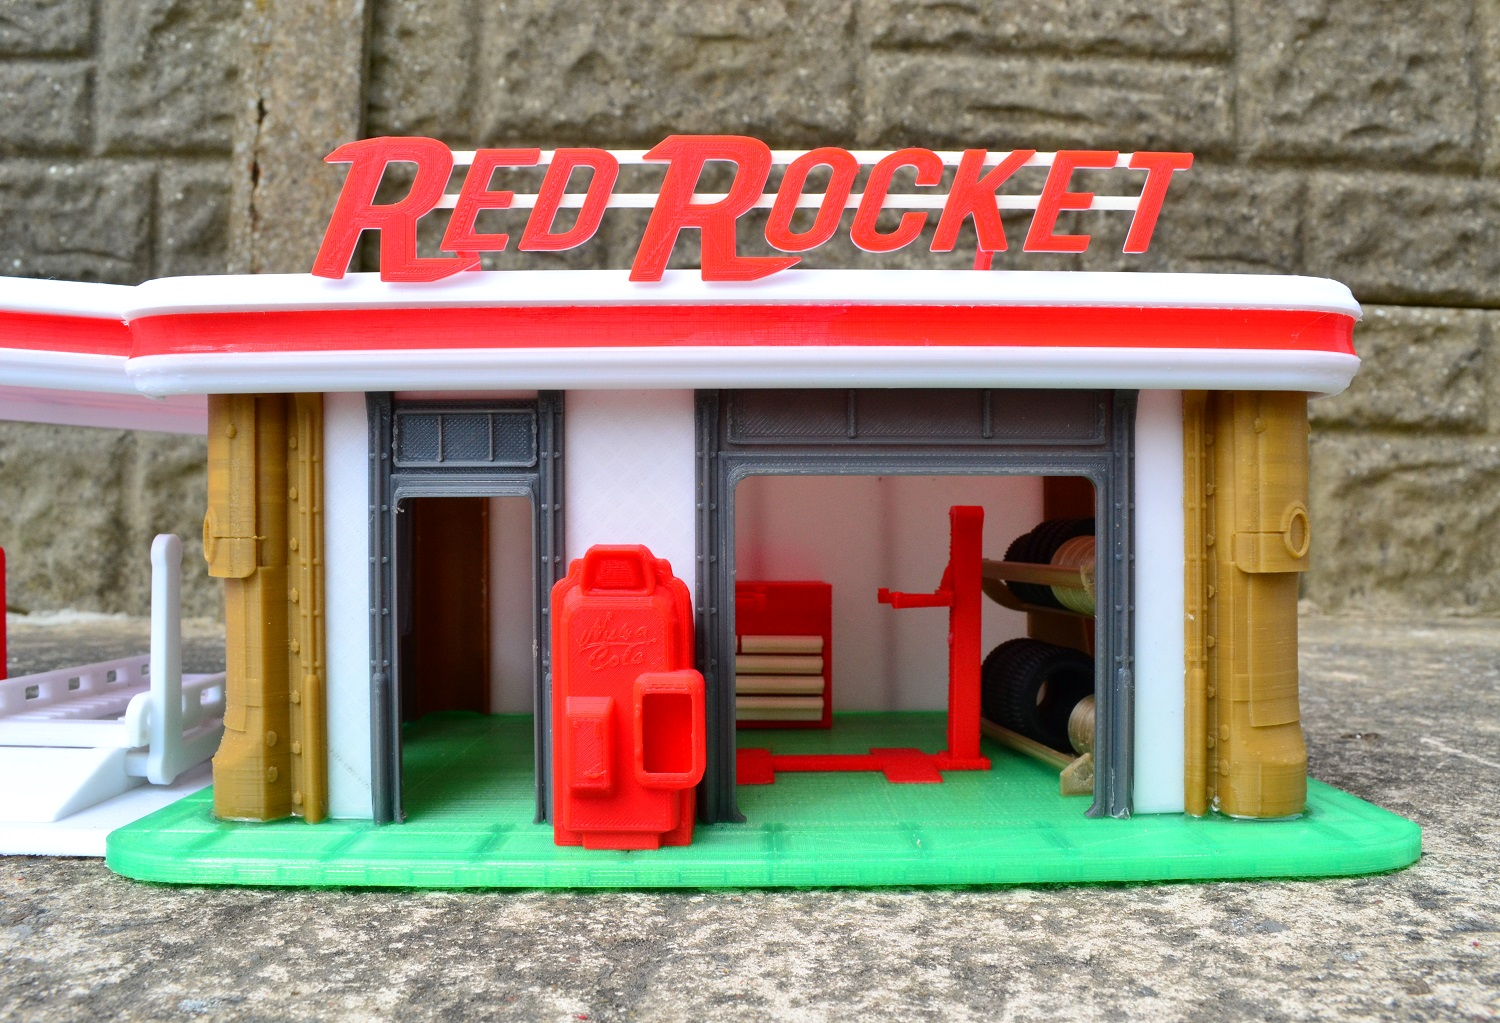 See Fallout 4's Red Rocket truck stop before the bombs with